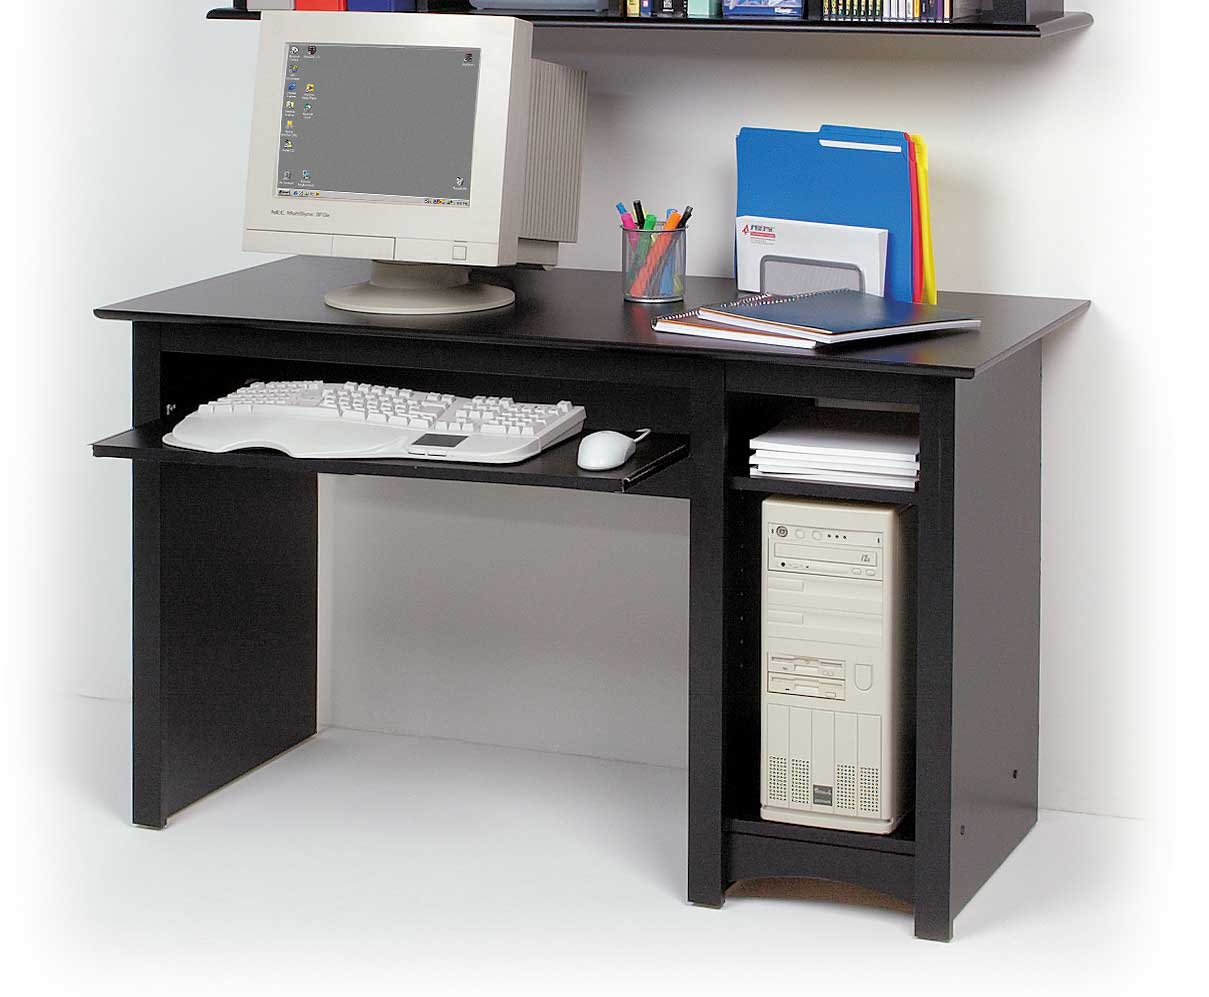 Swell Ikea Computer Desks Small Spaces Home House Beautifull Living Largest Home Design Picture Inspirations Pitcheantrous